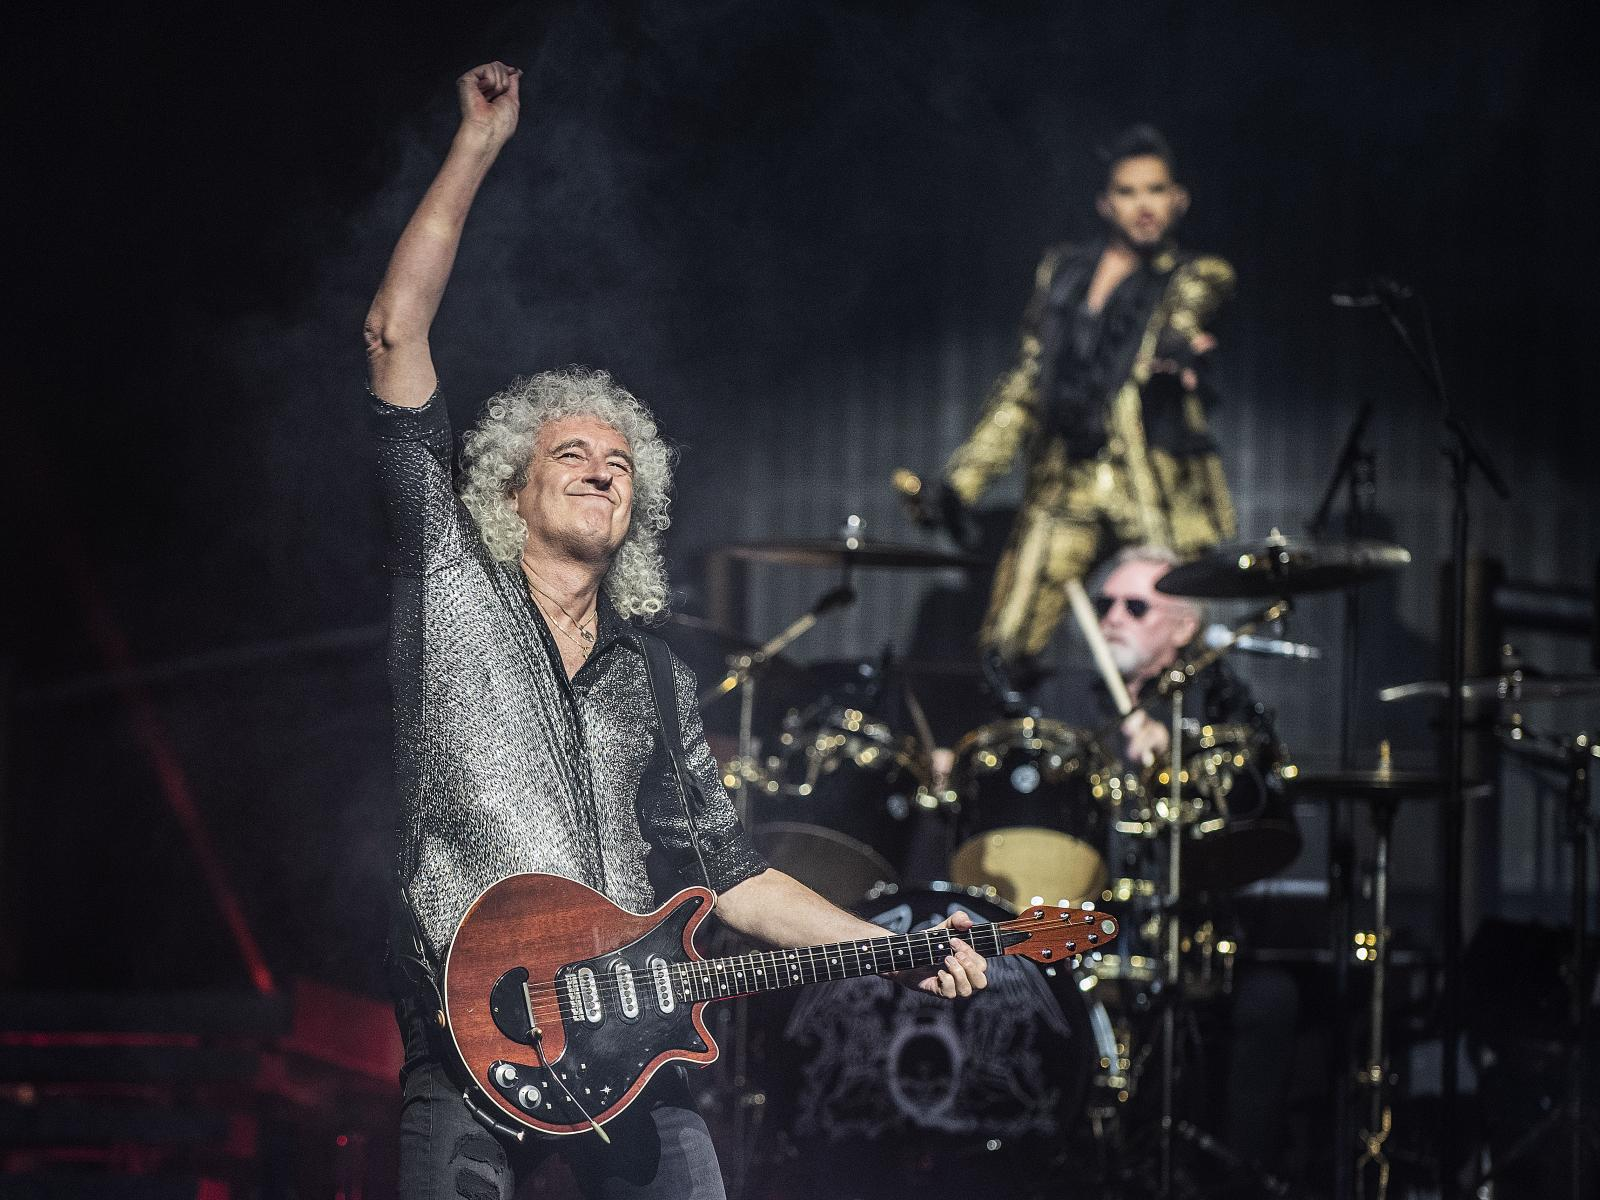 Queen guitarist Brian May, left, drummer Roger Taylor and lead vocalist Adam Lambert perform during their first of two nights at the Forum in Los Angeles on Friday, July 19, 2019. (Photo by Nick Agro, Contributing Photographer)